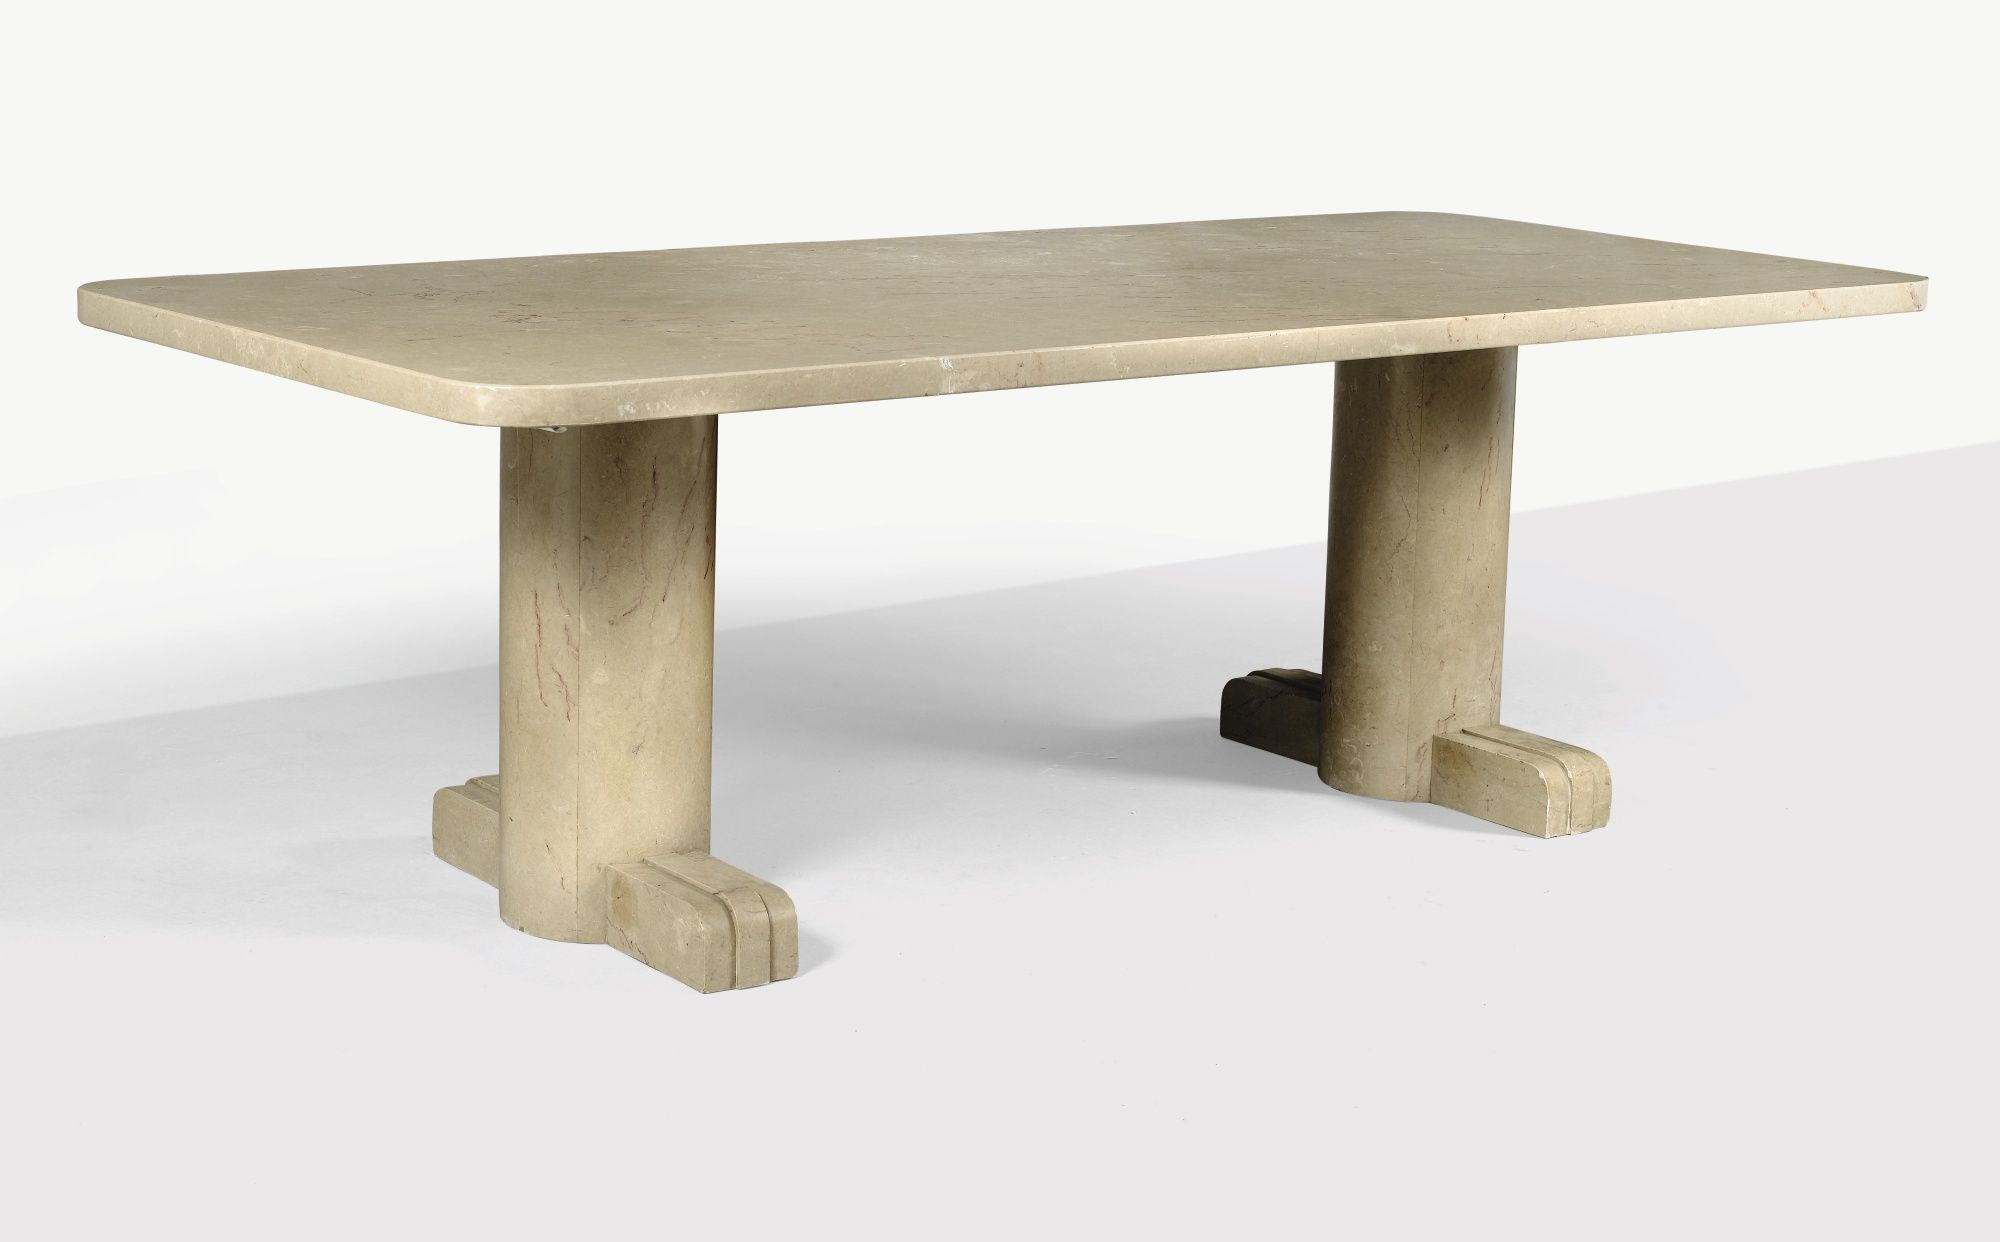 Herbst Rene Dining Table Cir Furniture Sotheby S Pf1704lot9f8vnen Med Billeder